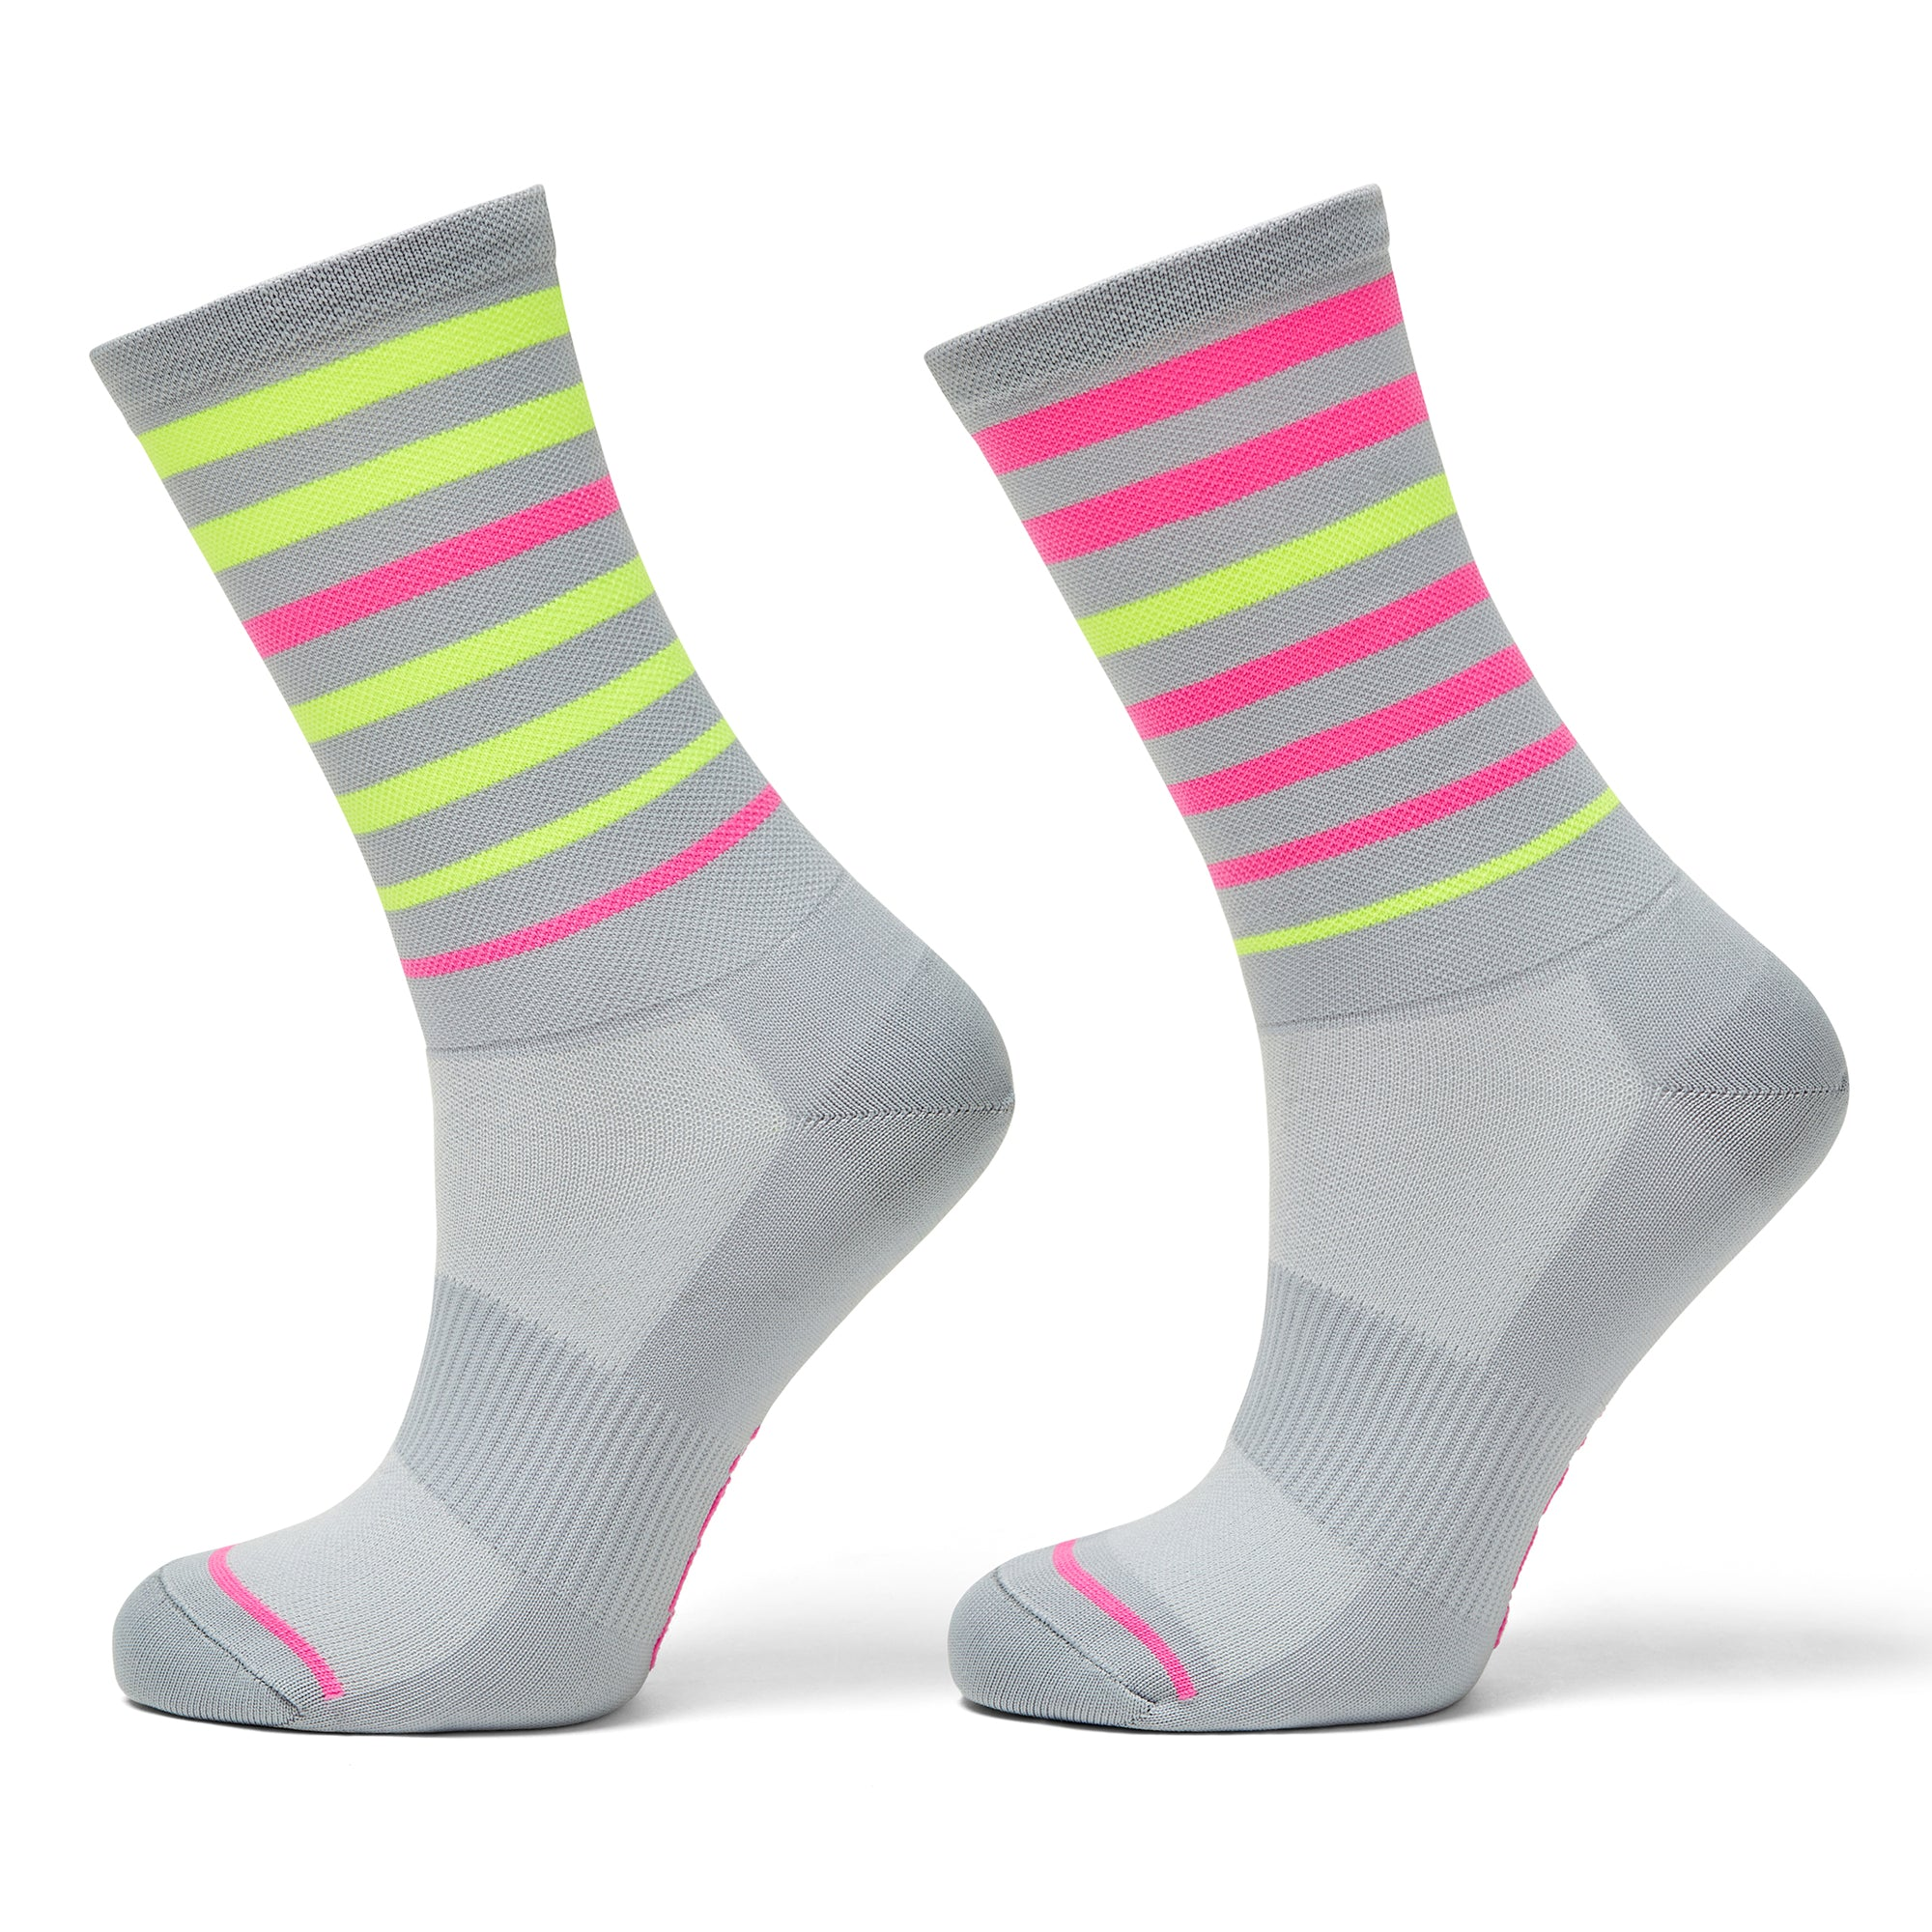 Breton striped cycling socks with fluro colours